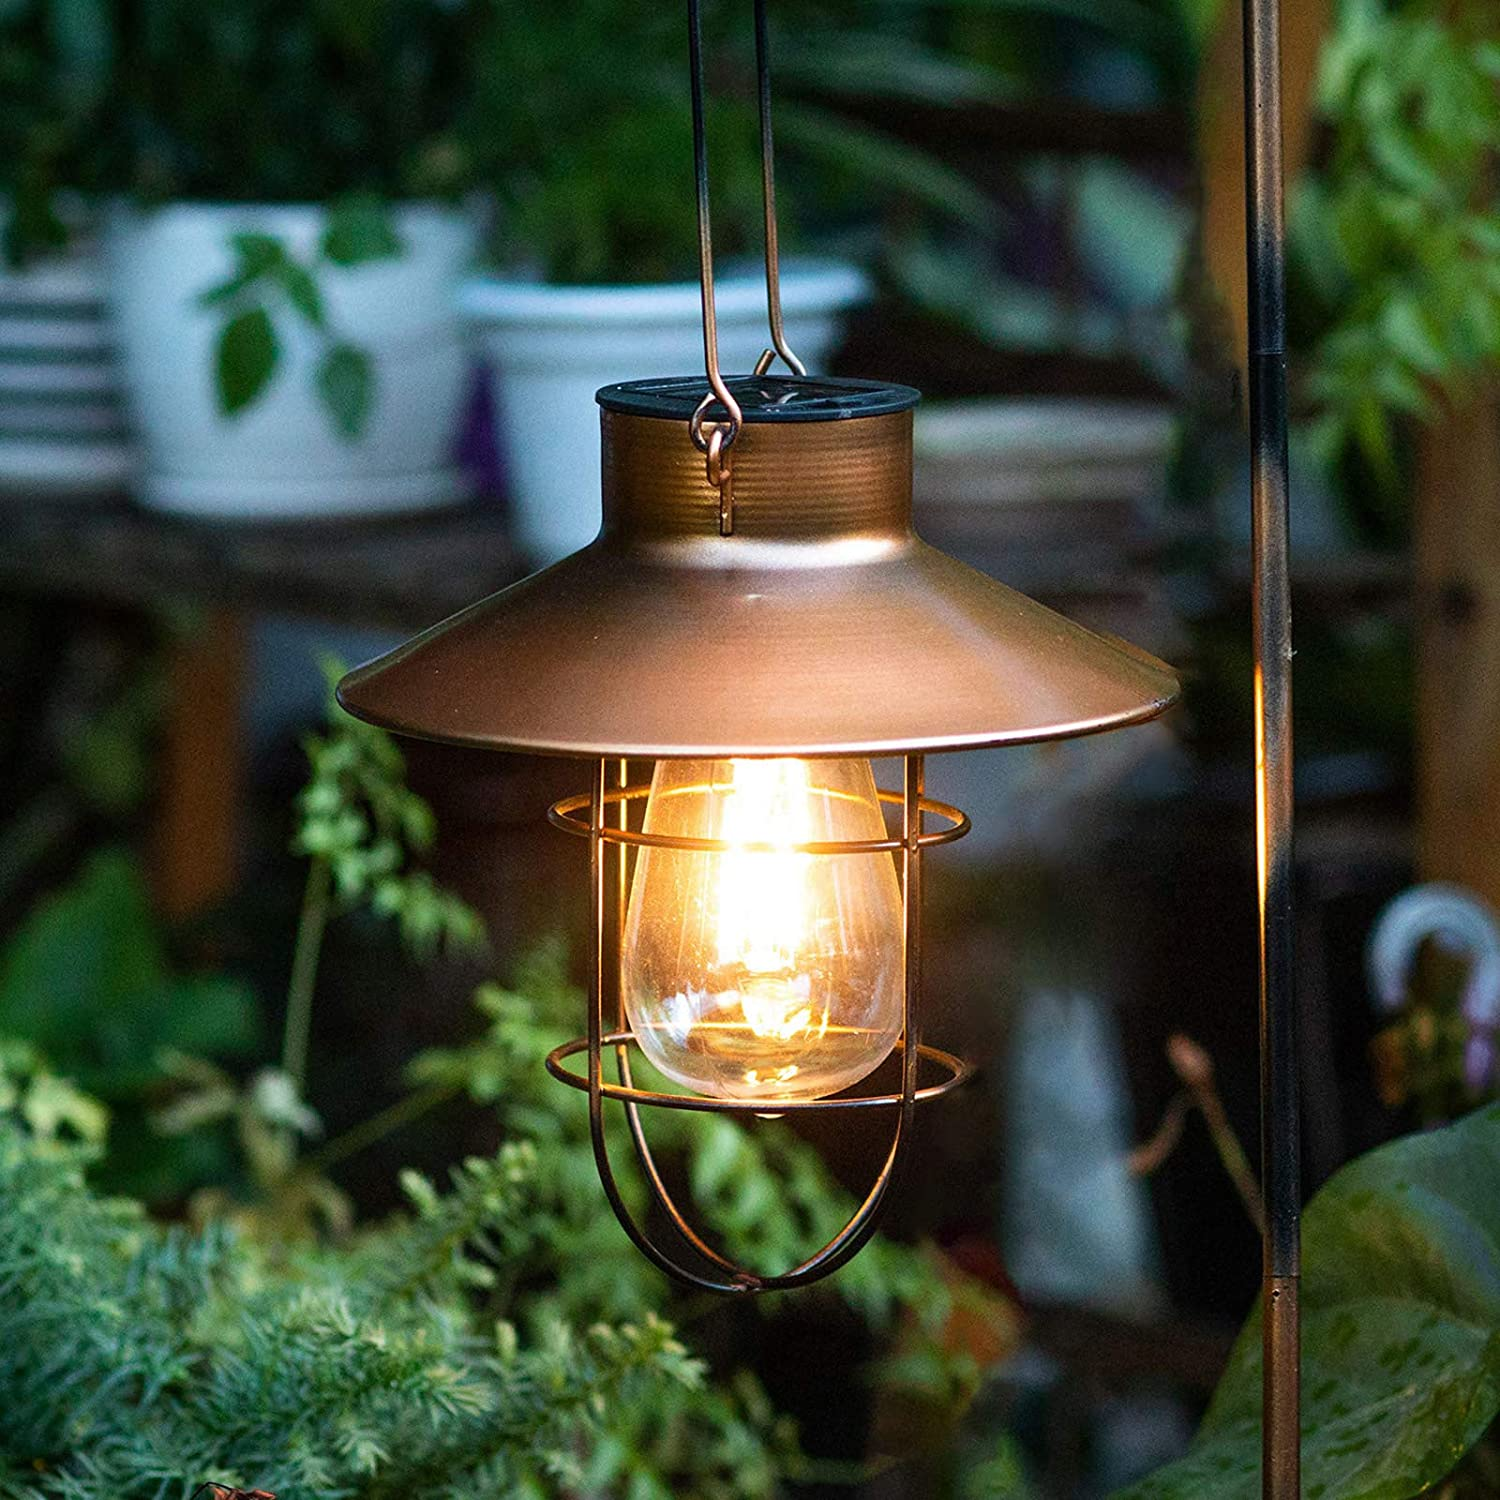 Polami Solar Lanterns Outdoor Hanging Lights Decorative with Metal Shepards Hook for Patio Garden Pathway Yard Decor (2PACK, Copper)